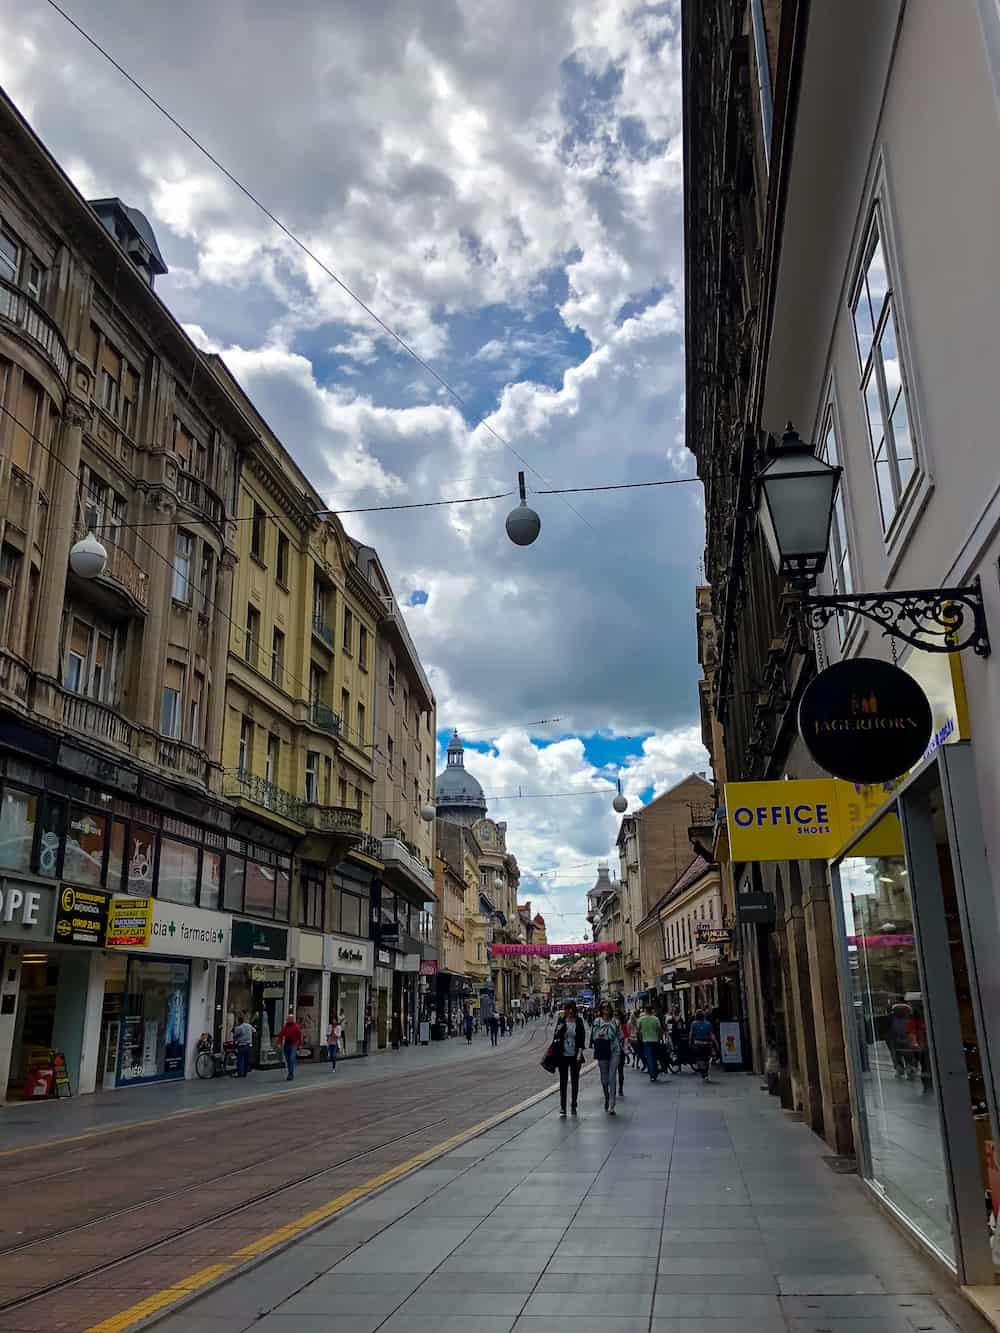 Image of Ilica in Zagreb, Croatia